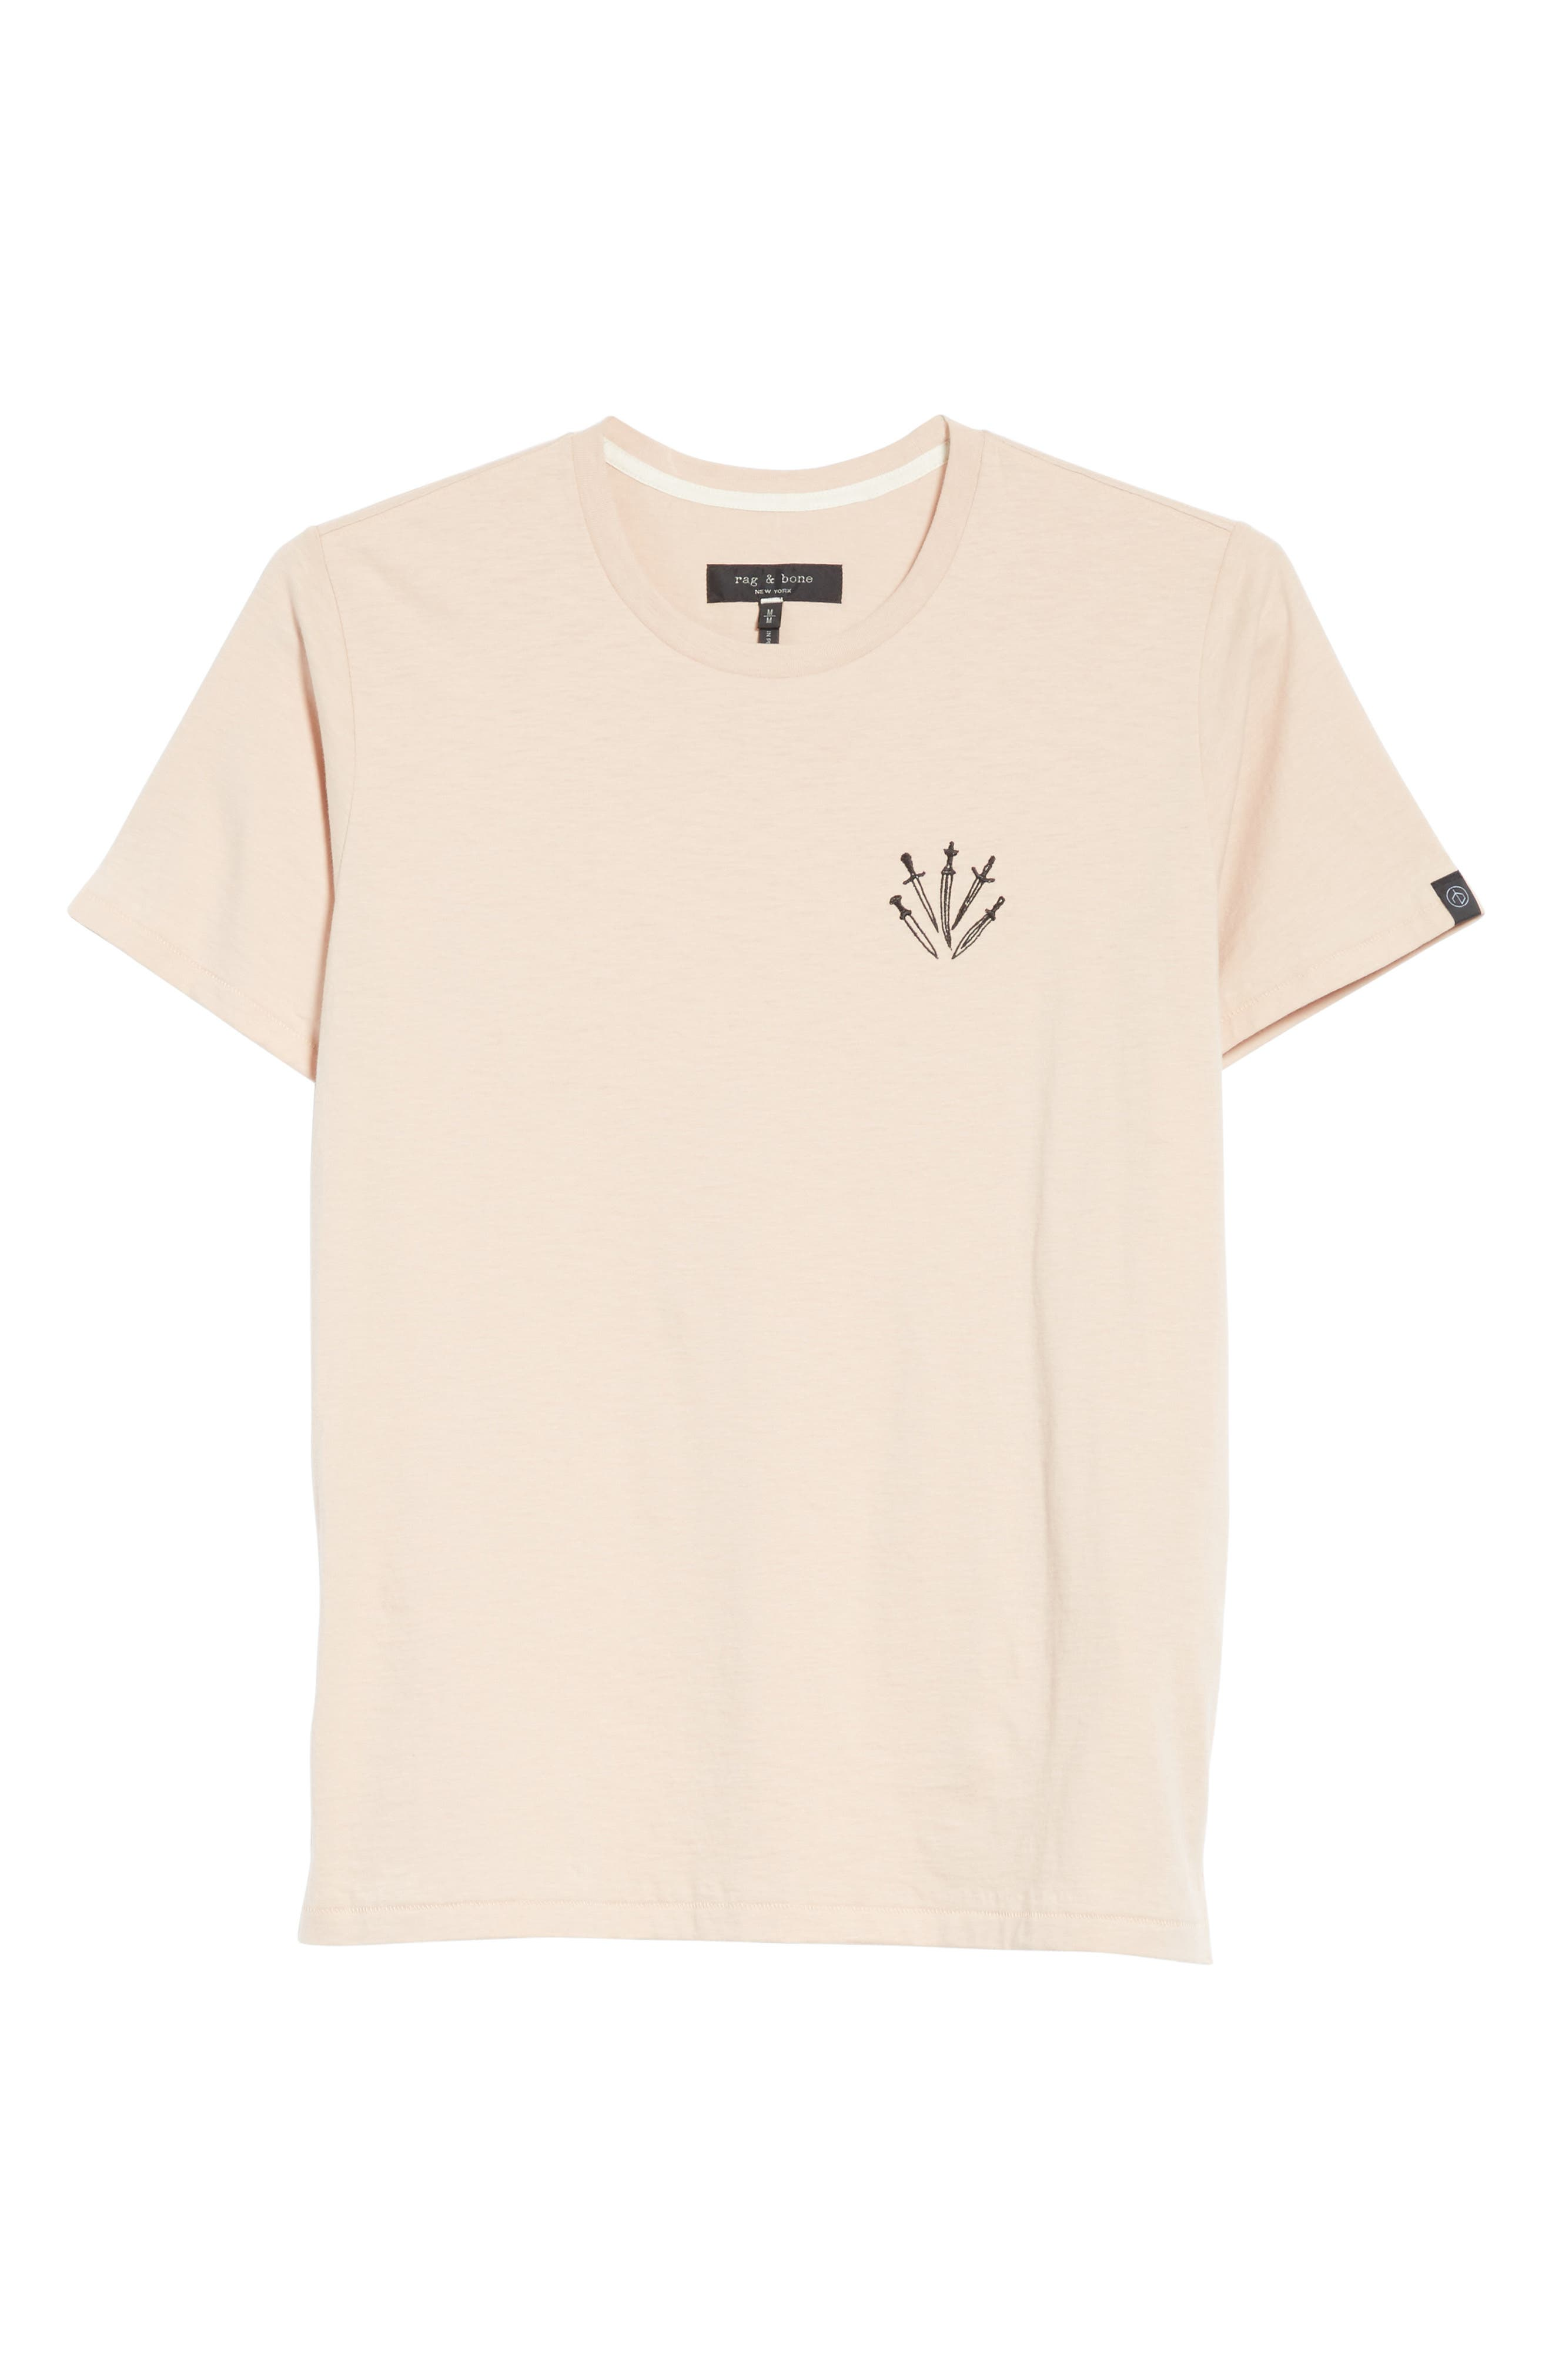 Dagger Embroidered T-Shirt,                             Alternate thumbnail 6, color,                             Pink